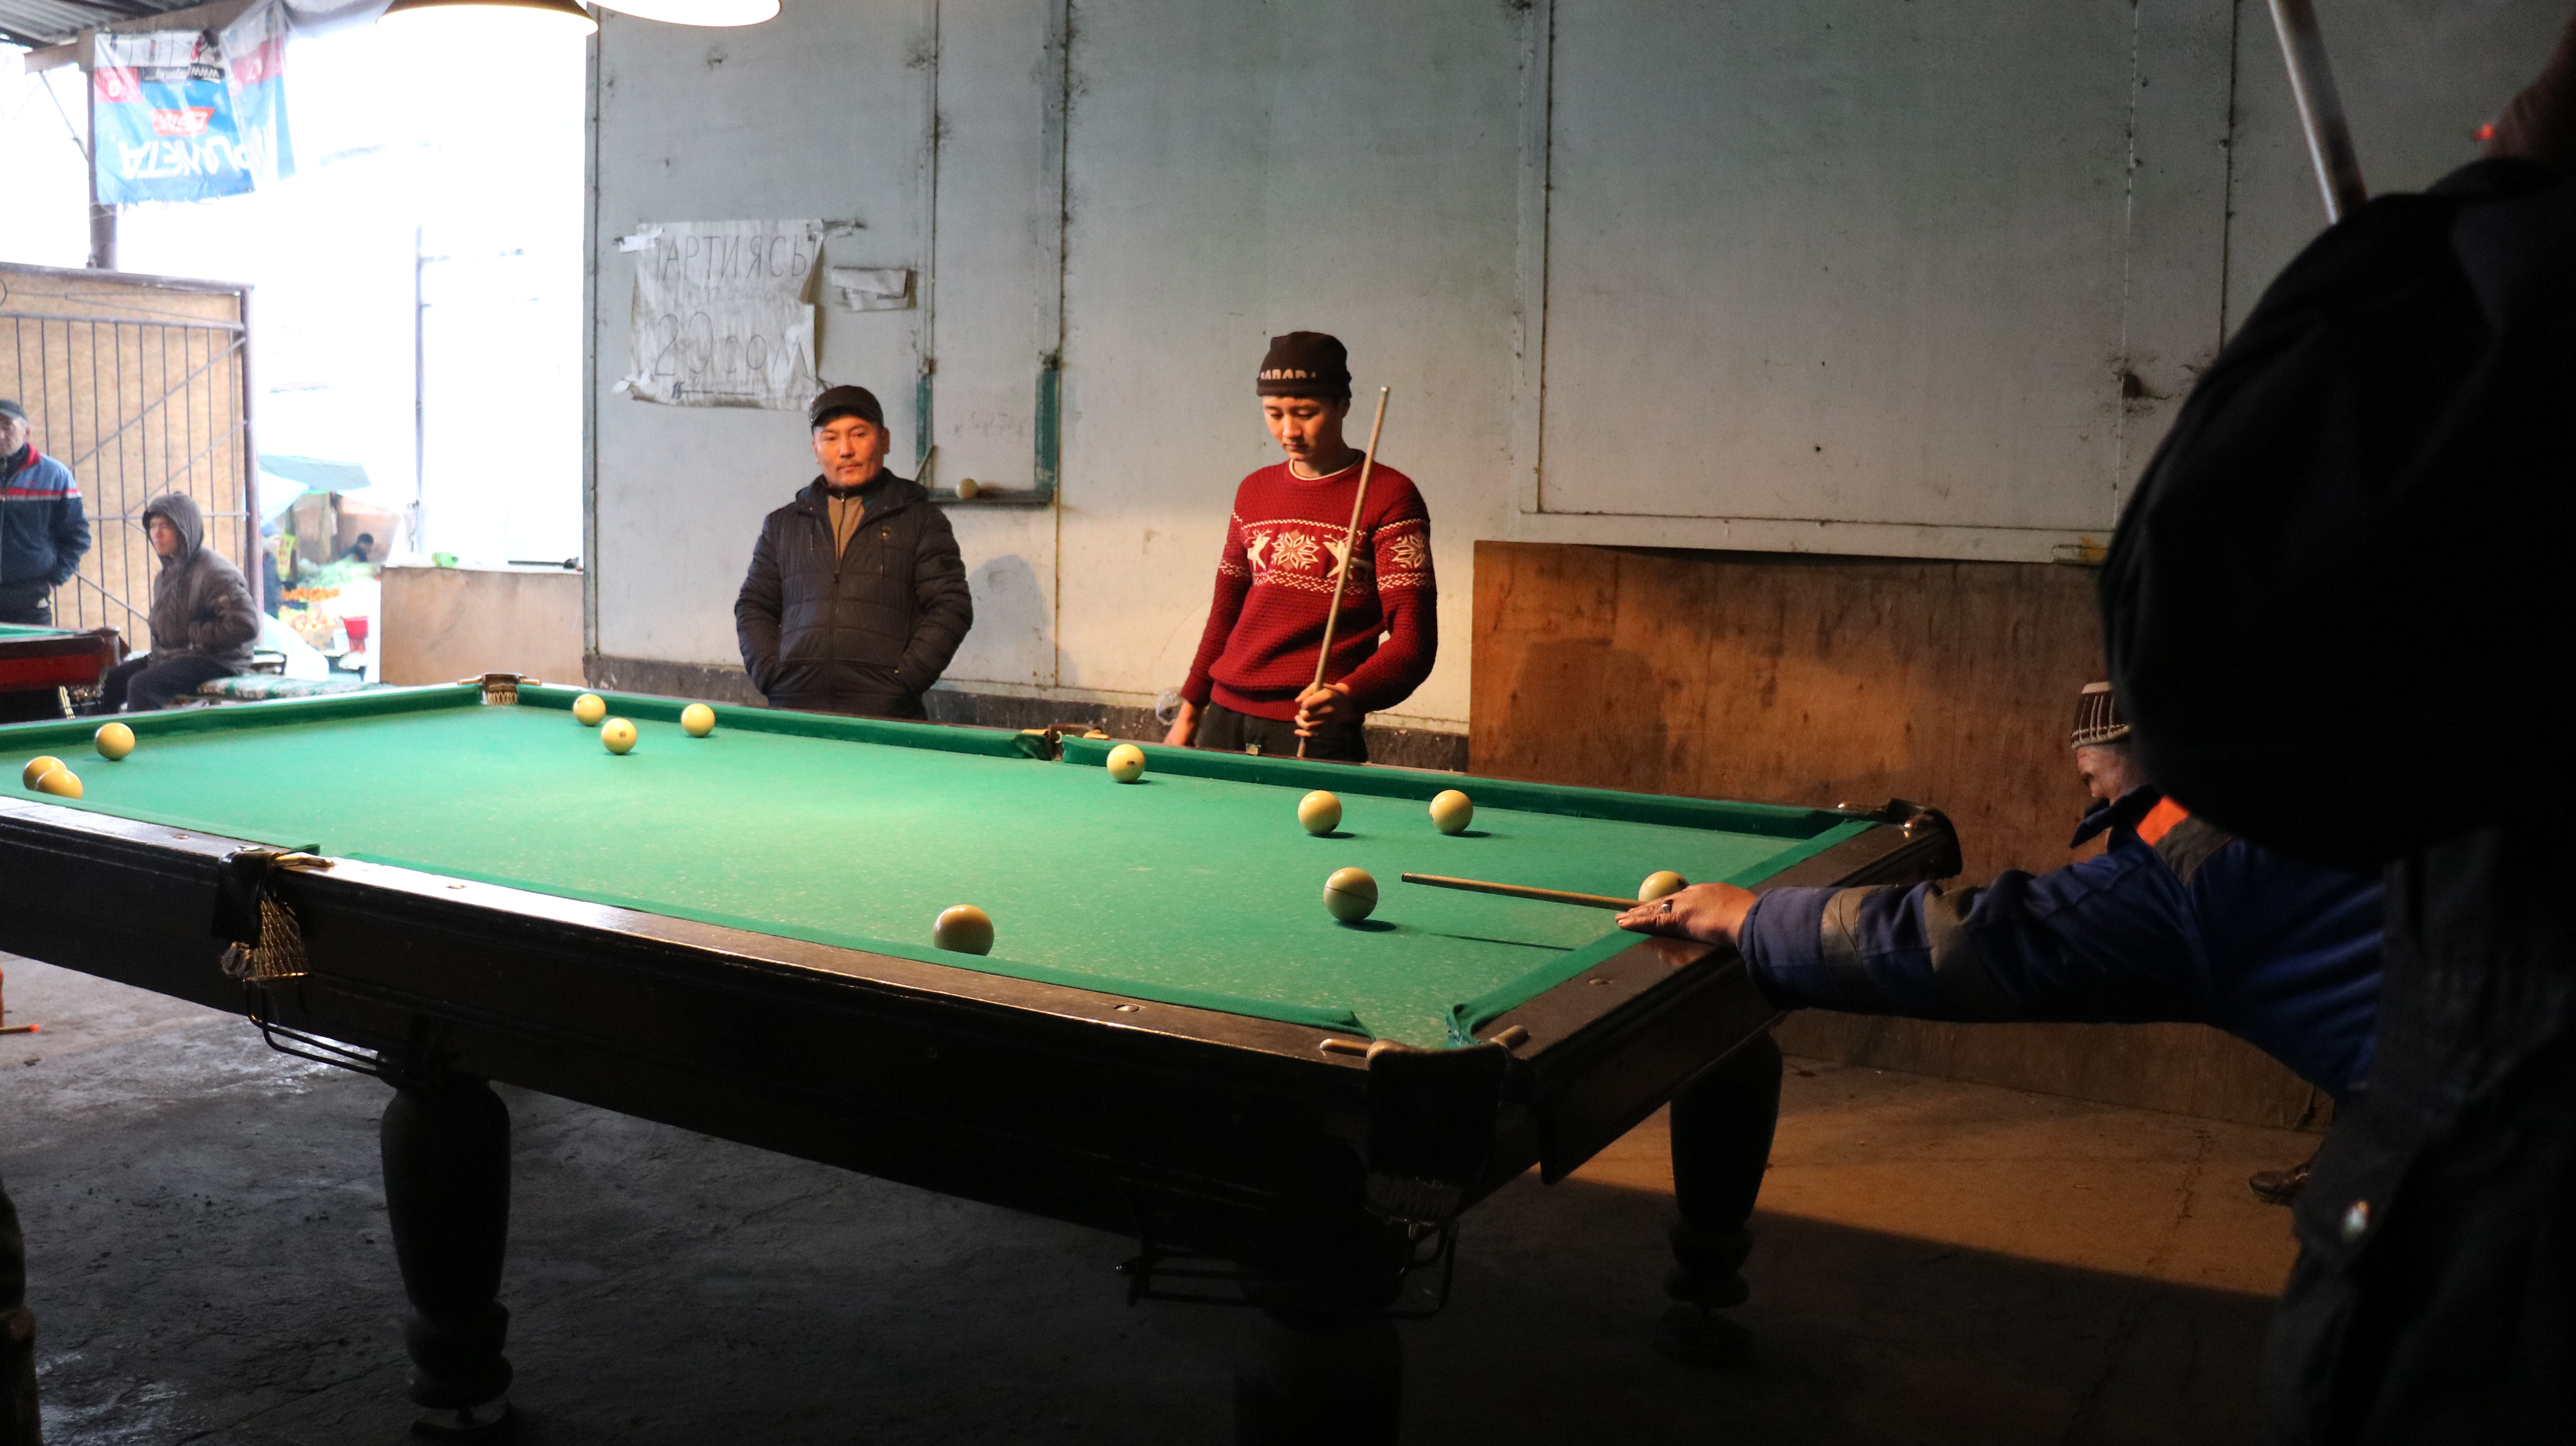 People casually playing pool at the Bazar.